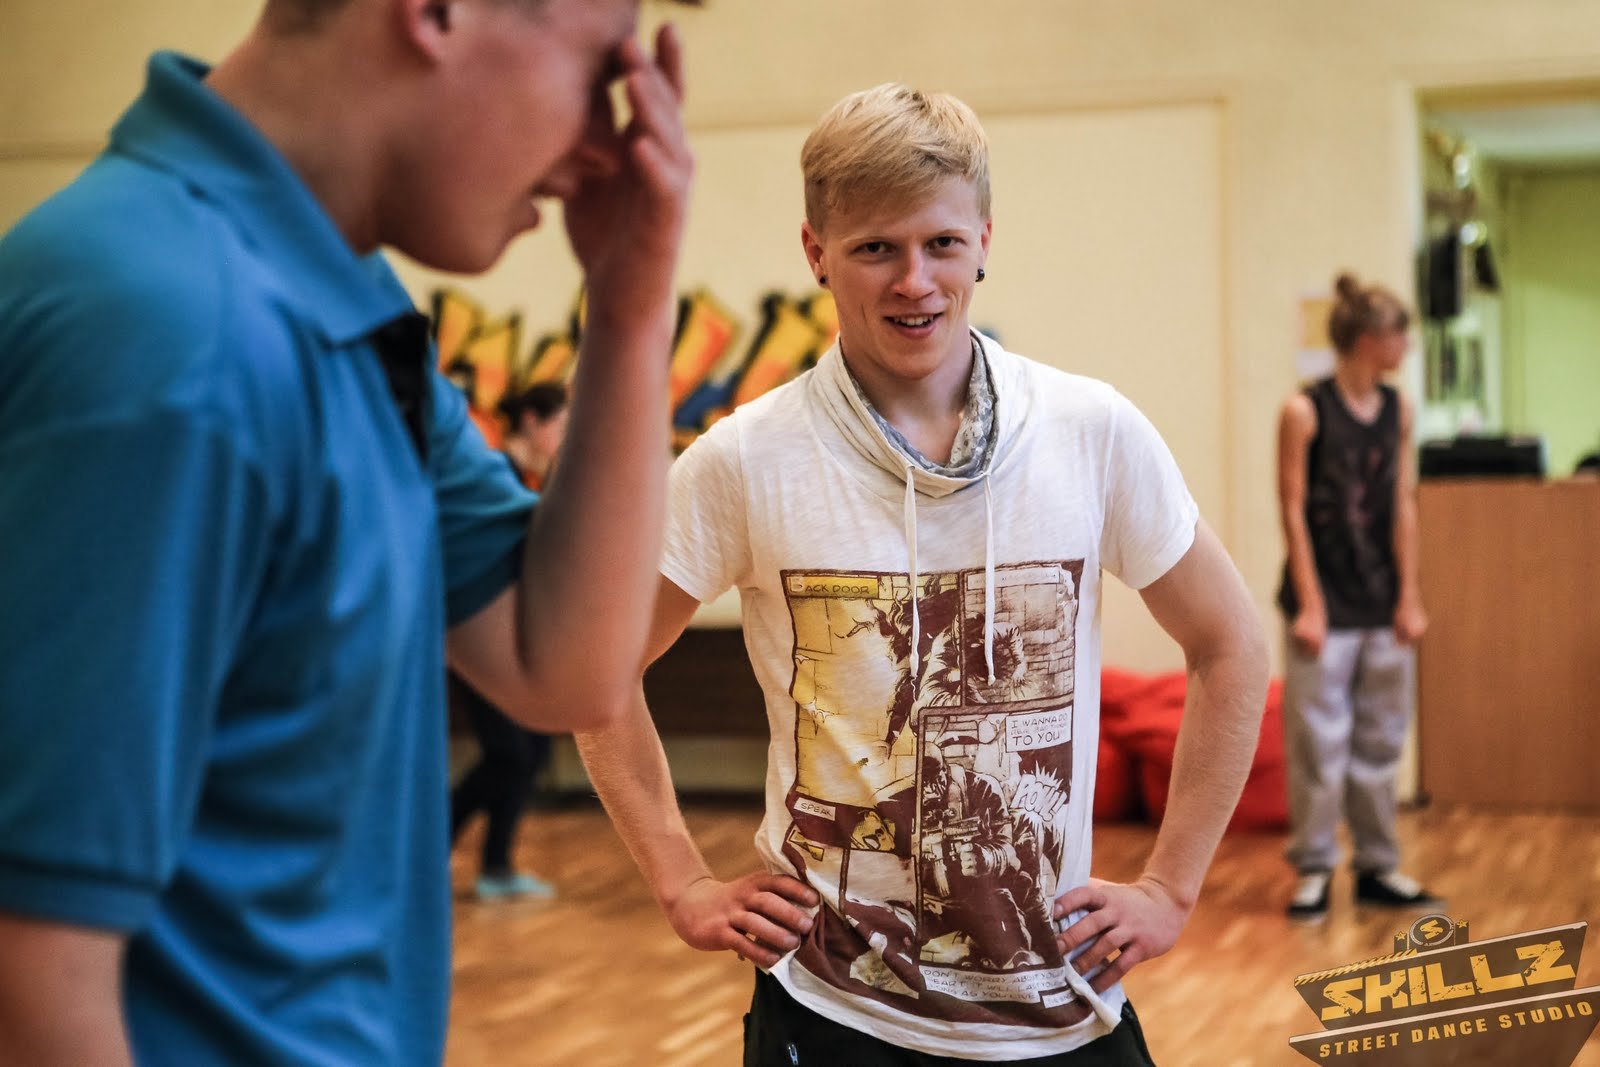 Workshop with Kusch (Russia) - IMG_4871.jpg